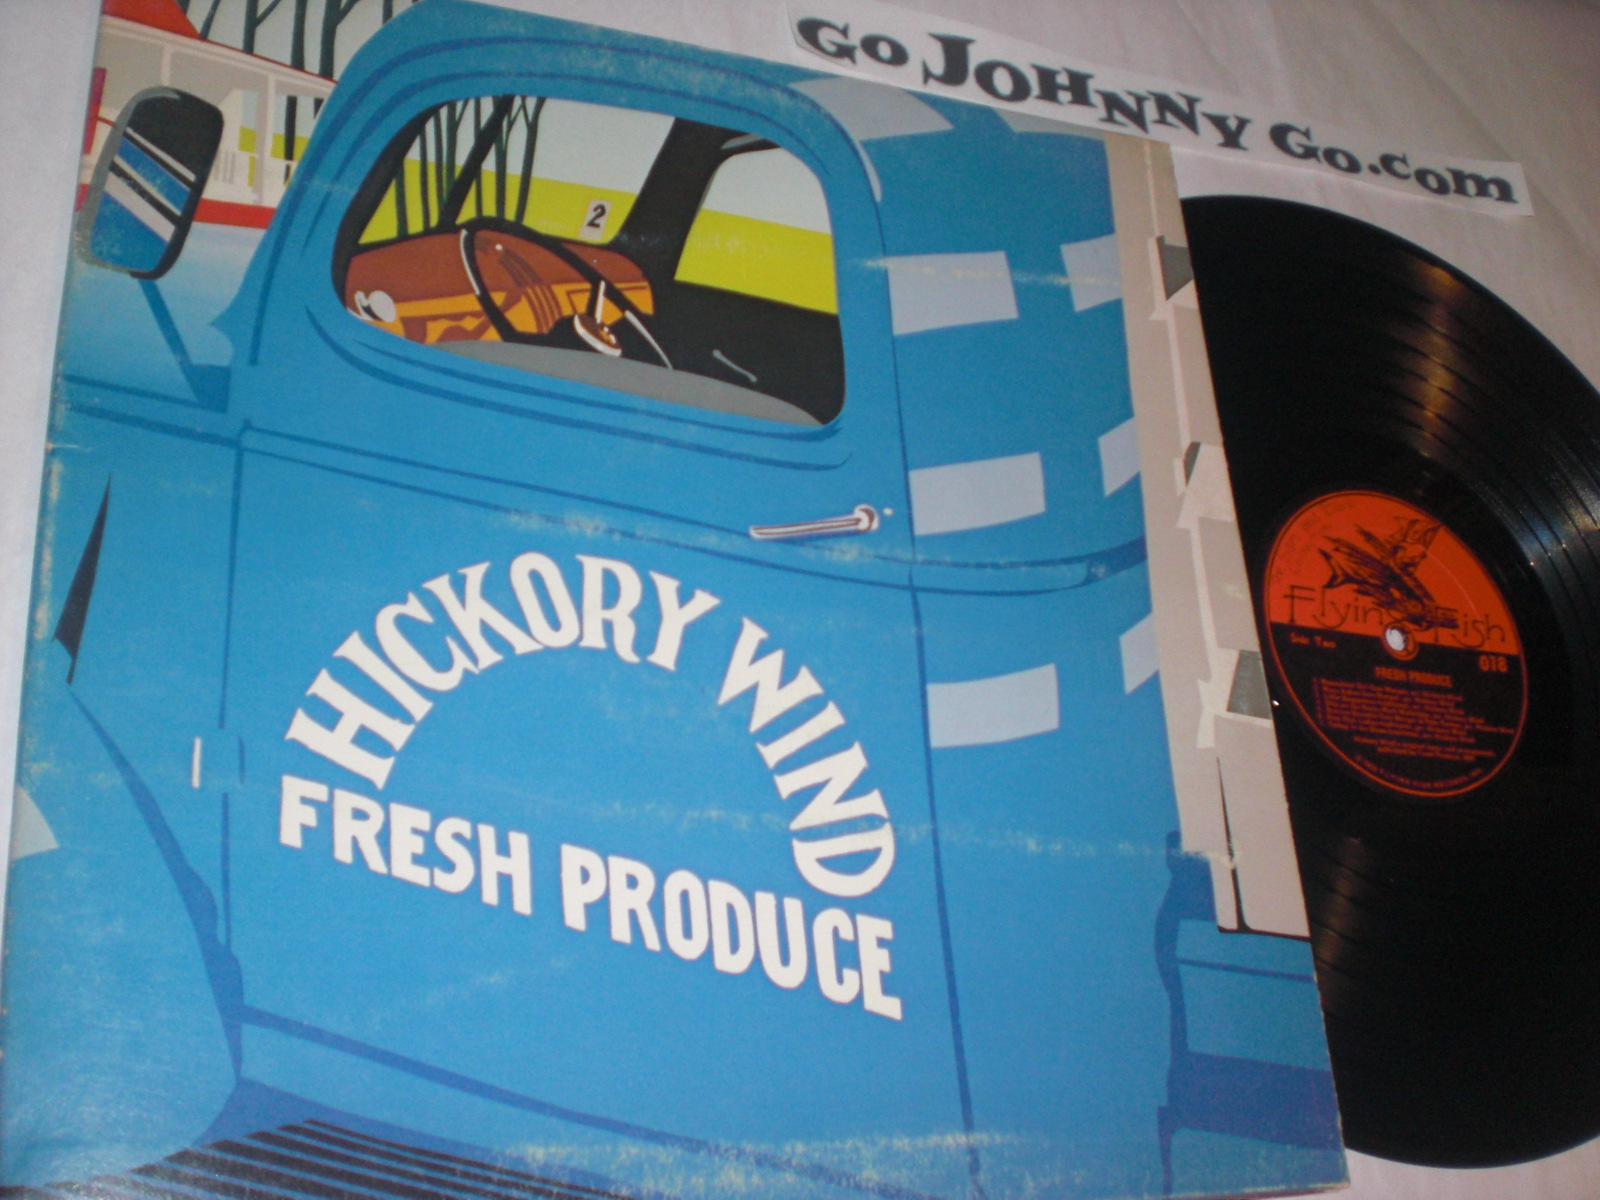 Hickory Wind - Fresh Produce Record